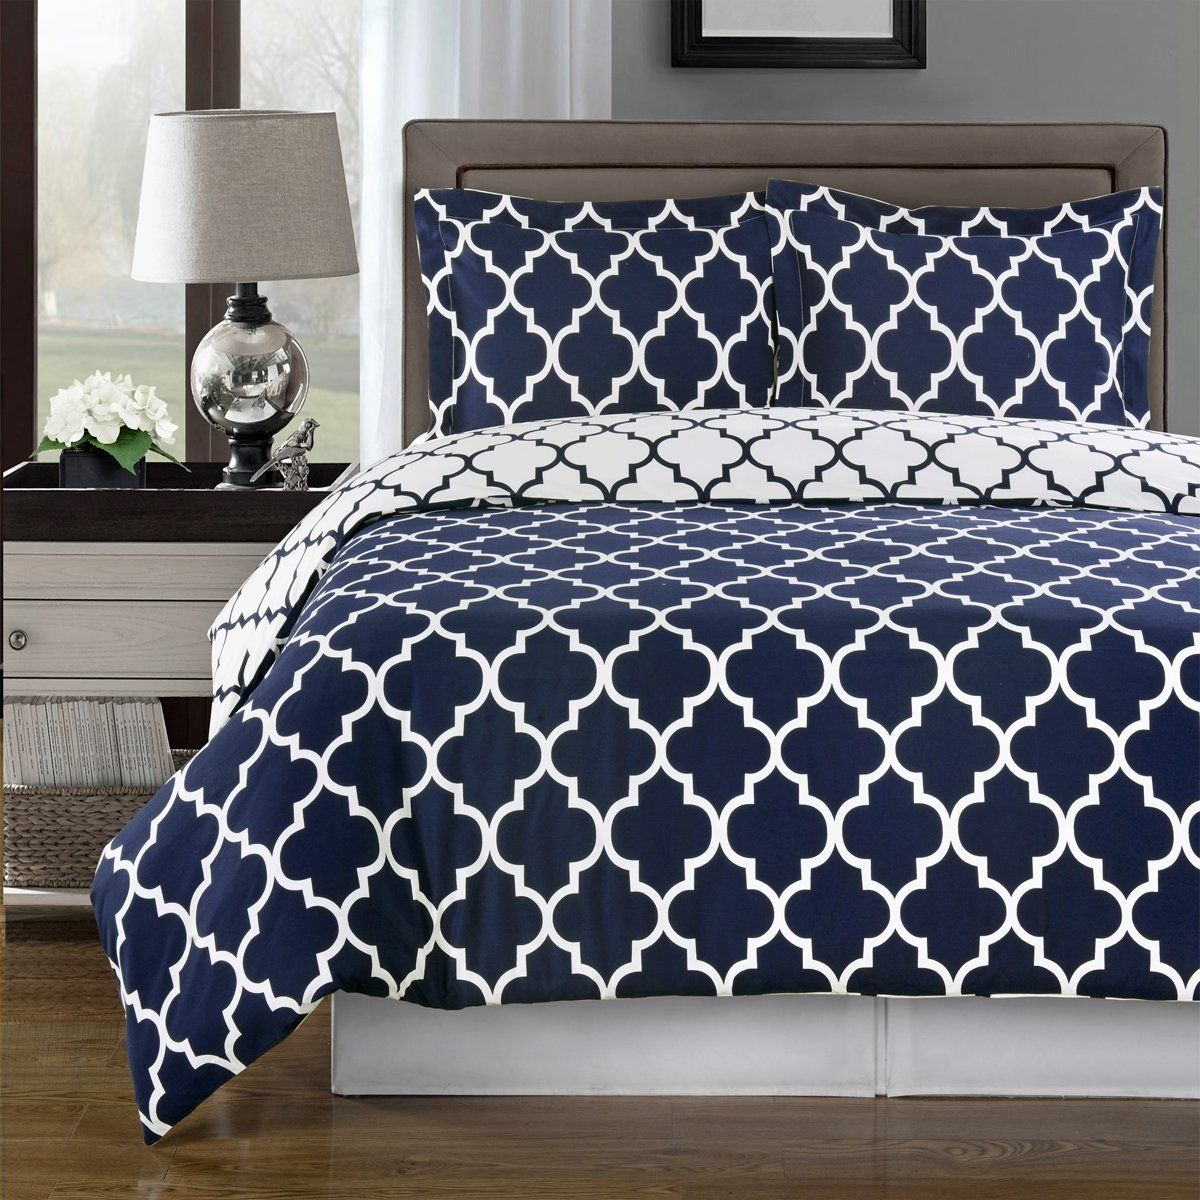 Blue and white bedding - I Like The Graphic Navy Bedding Dark And Taupe Furniture Colors And Gray Walls